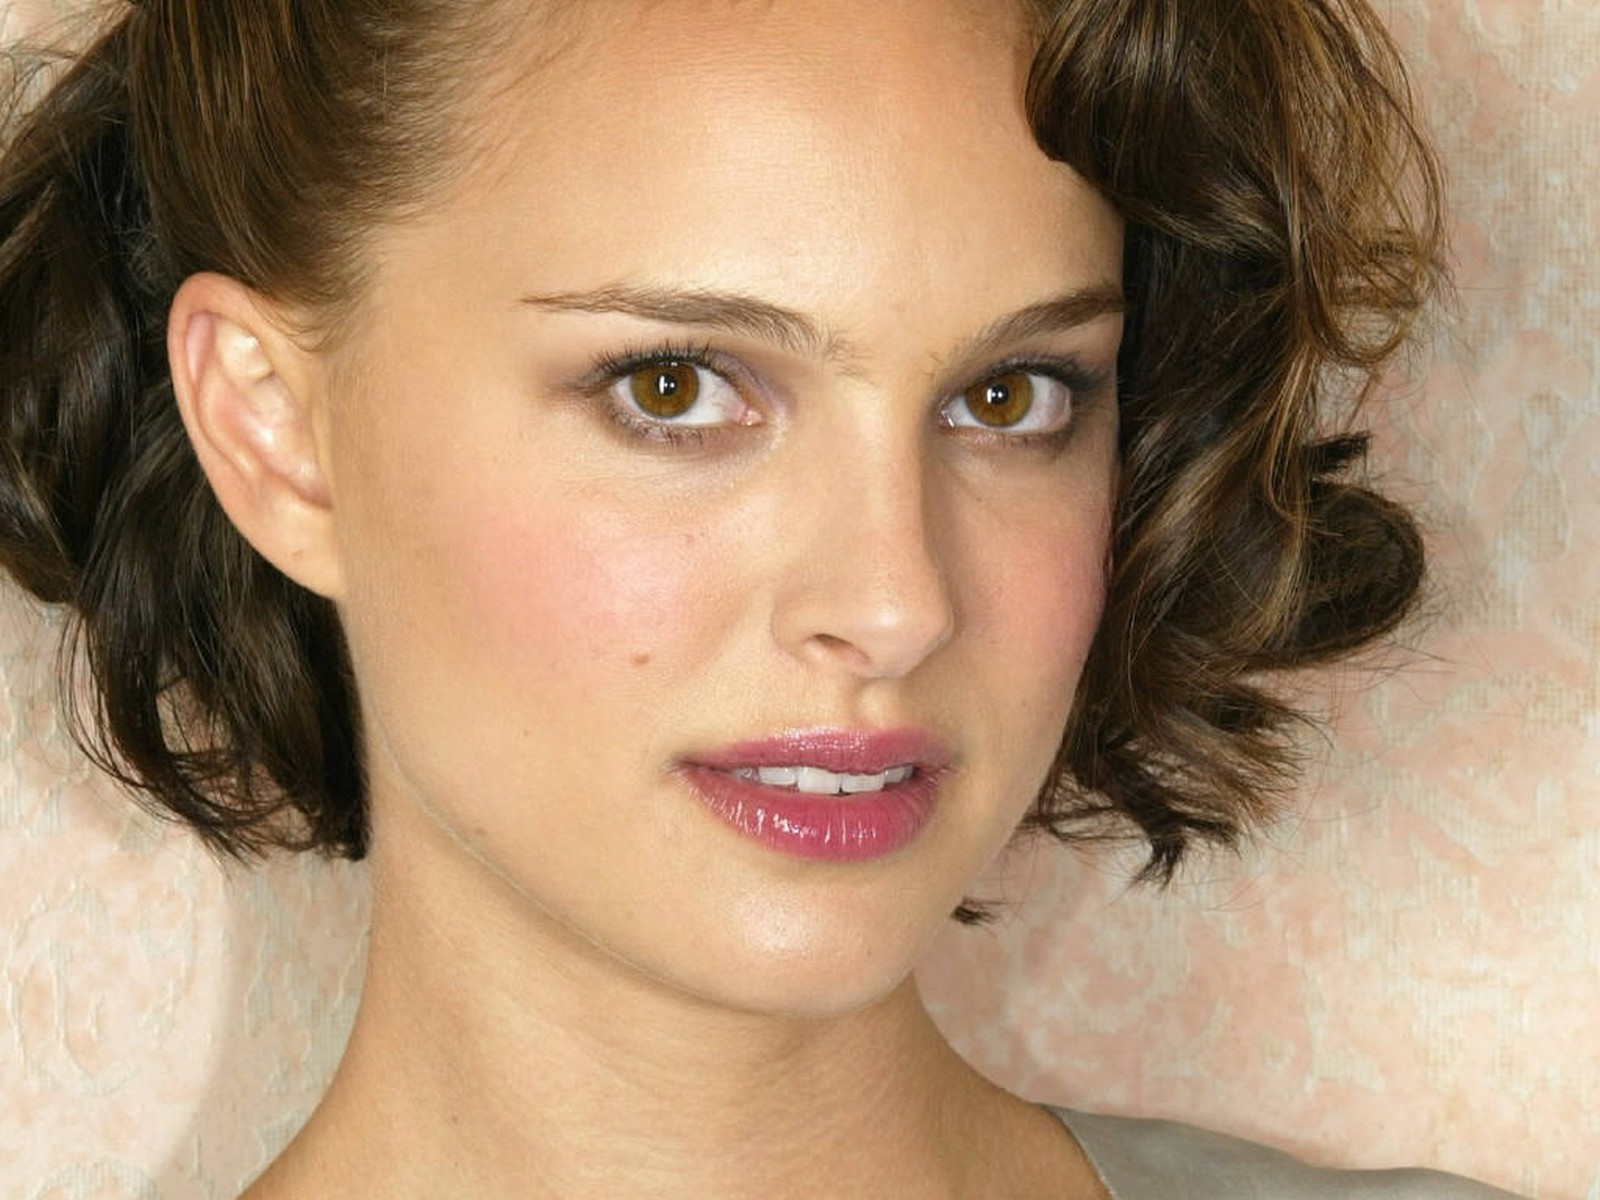 V For Vendetta Quotes Natalie Portman: Natal...